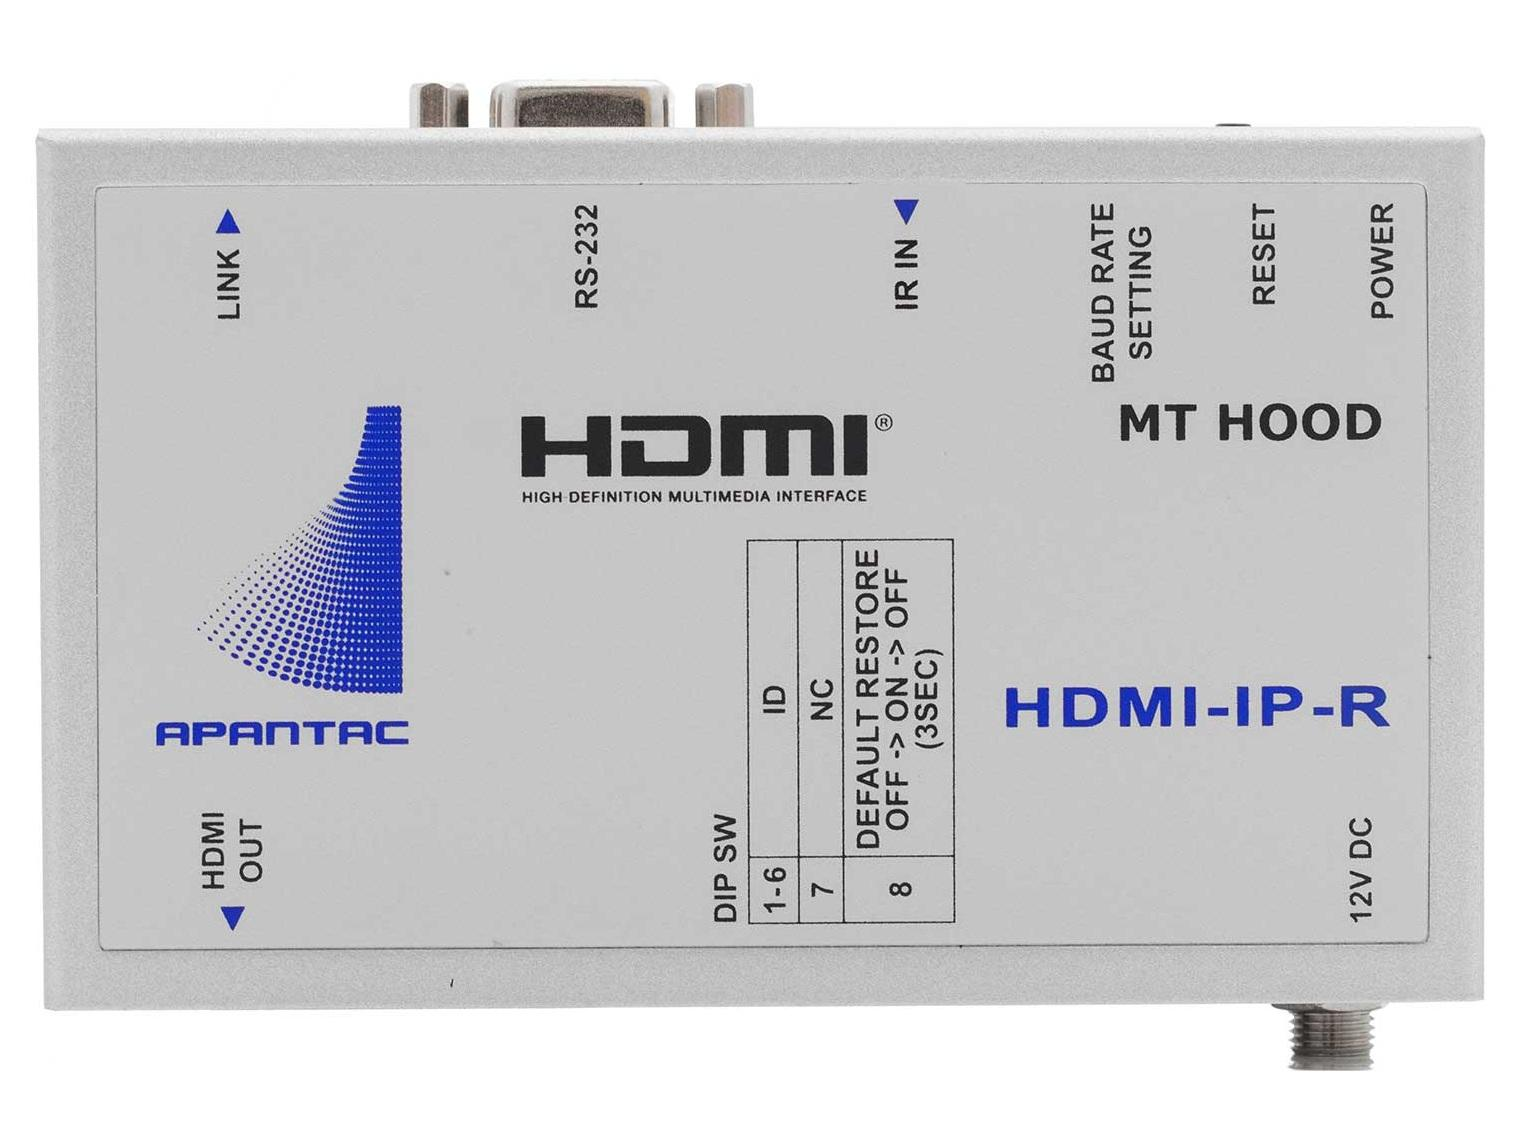 HDMI-IP-R HDMI Extender (Receiver) with RS232/IR over Gigabit Ethernet Network by Apantac